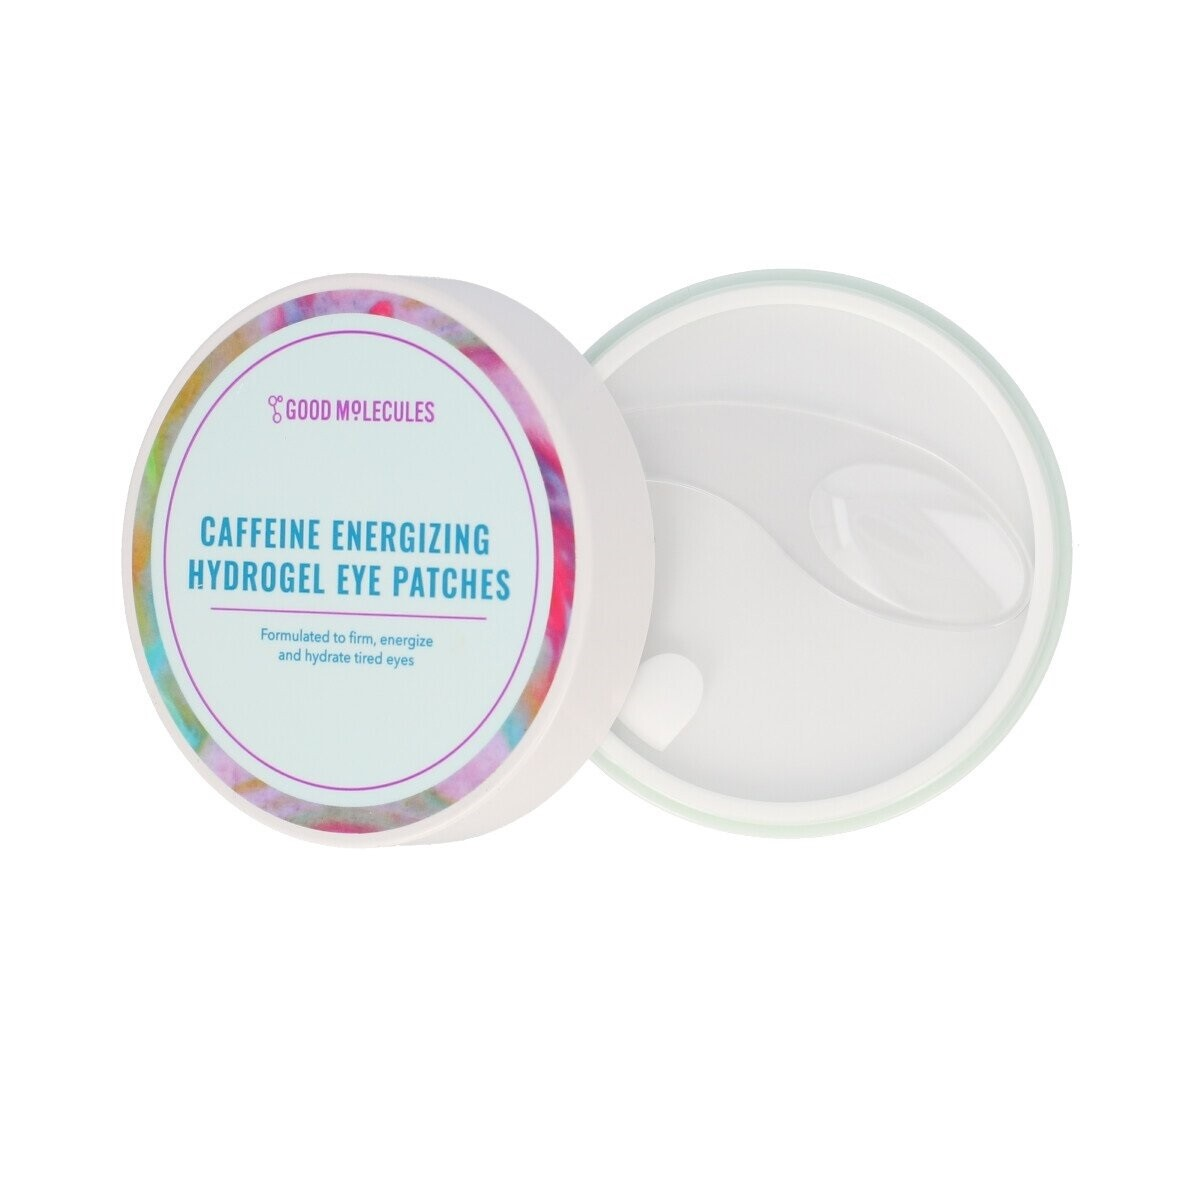 Hydrogel Eye Patches - GOOD MOLECULES